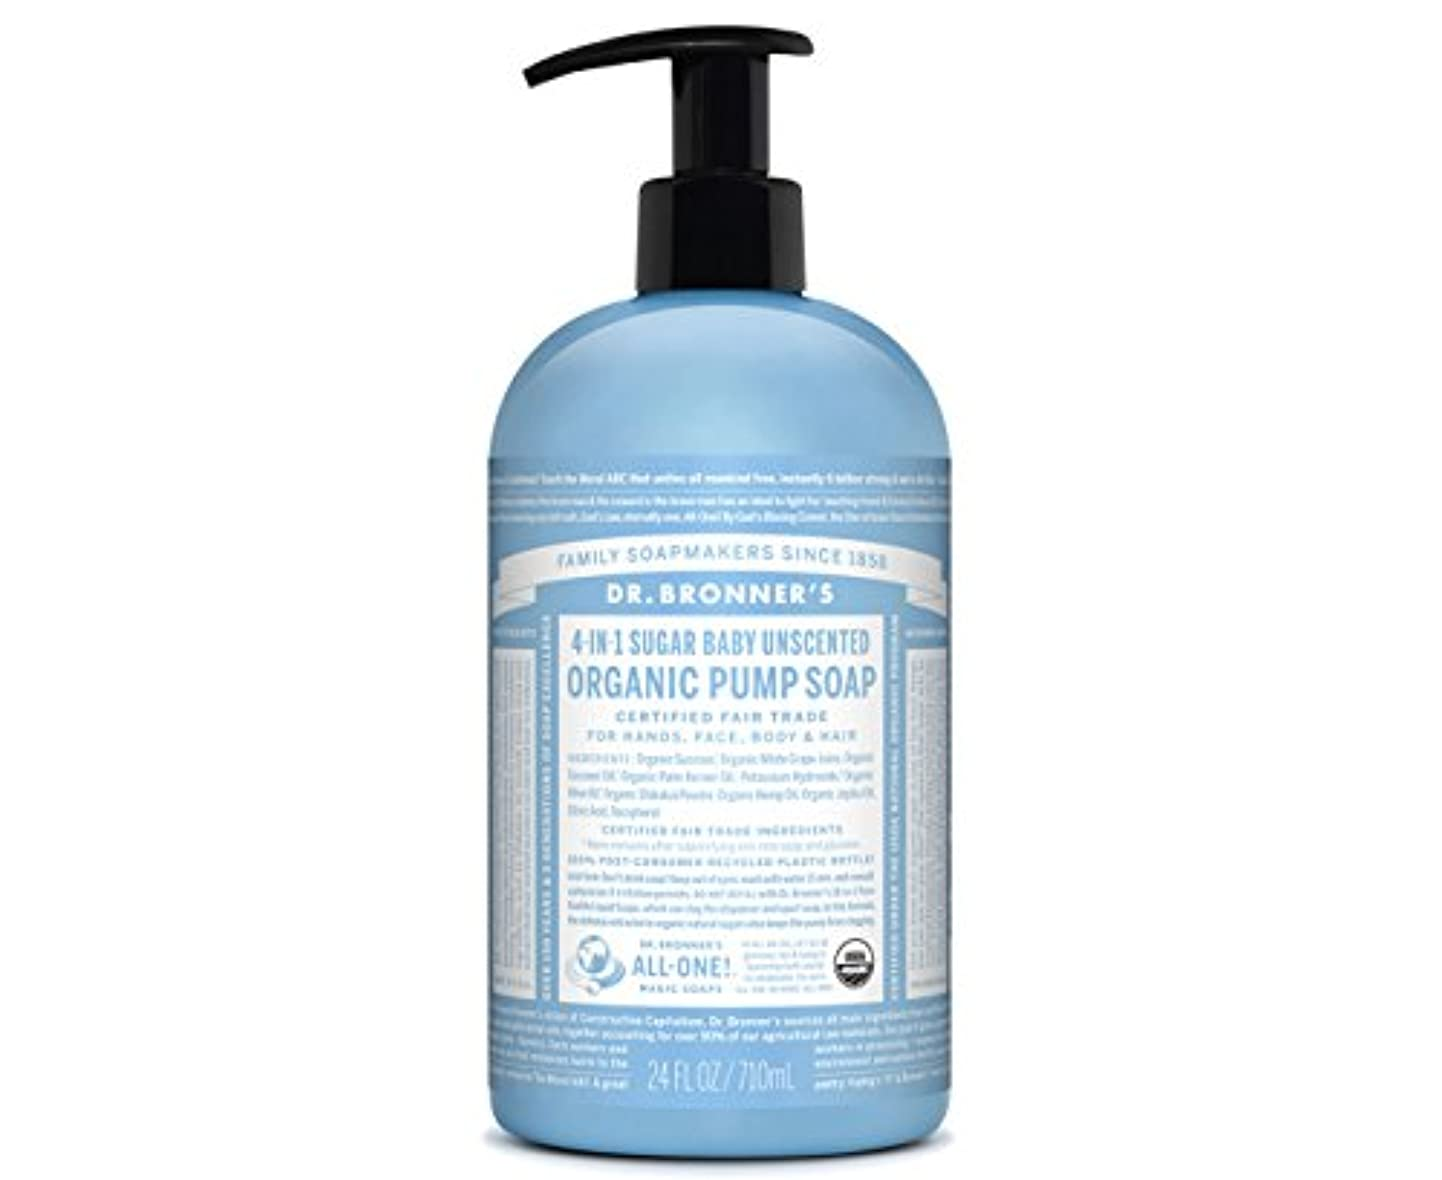 ステレオタイプ憎しみクレジットDr Bronner Org Shikakai Baby Mild Soap 709 ML (order 6 for trade outer) / ????????Shikakai??????????709 ML ???...